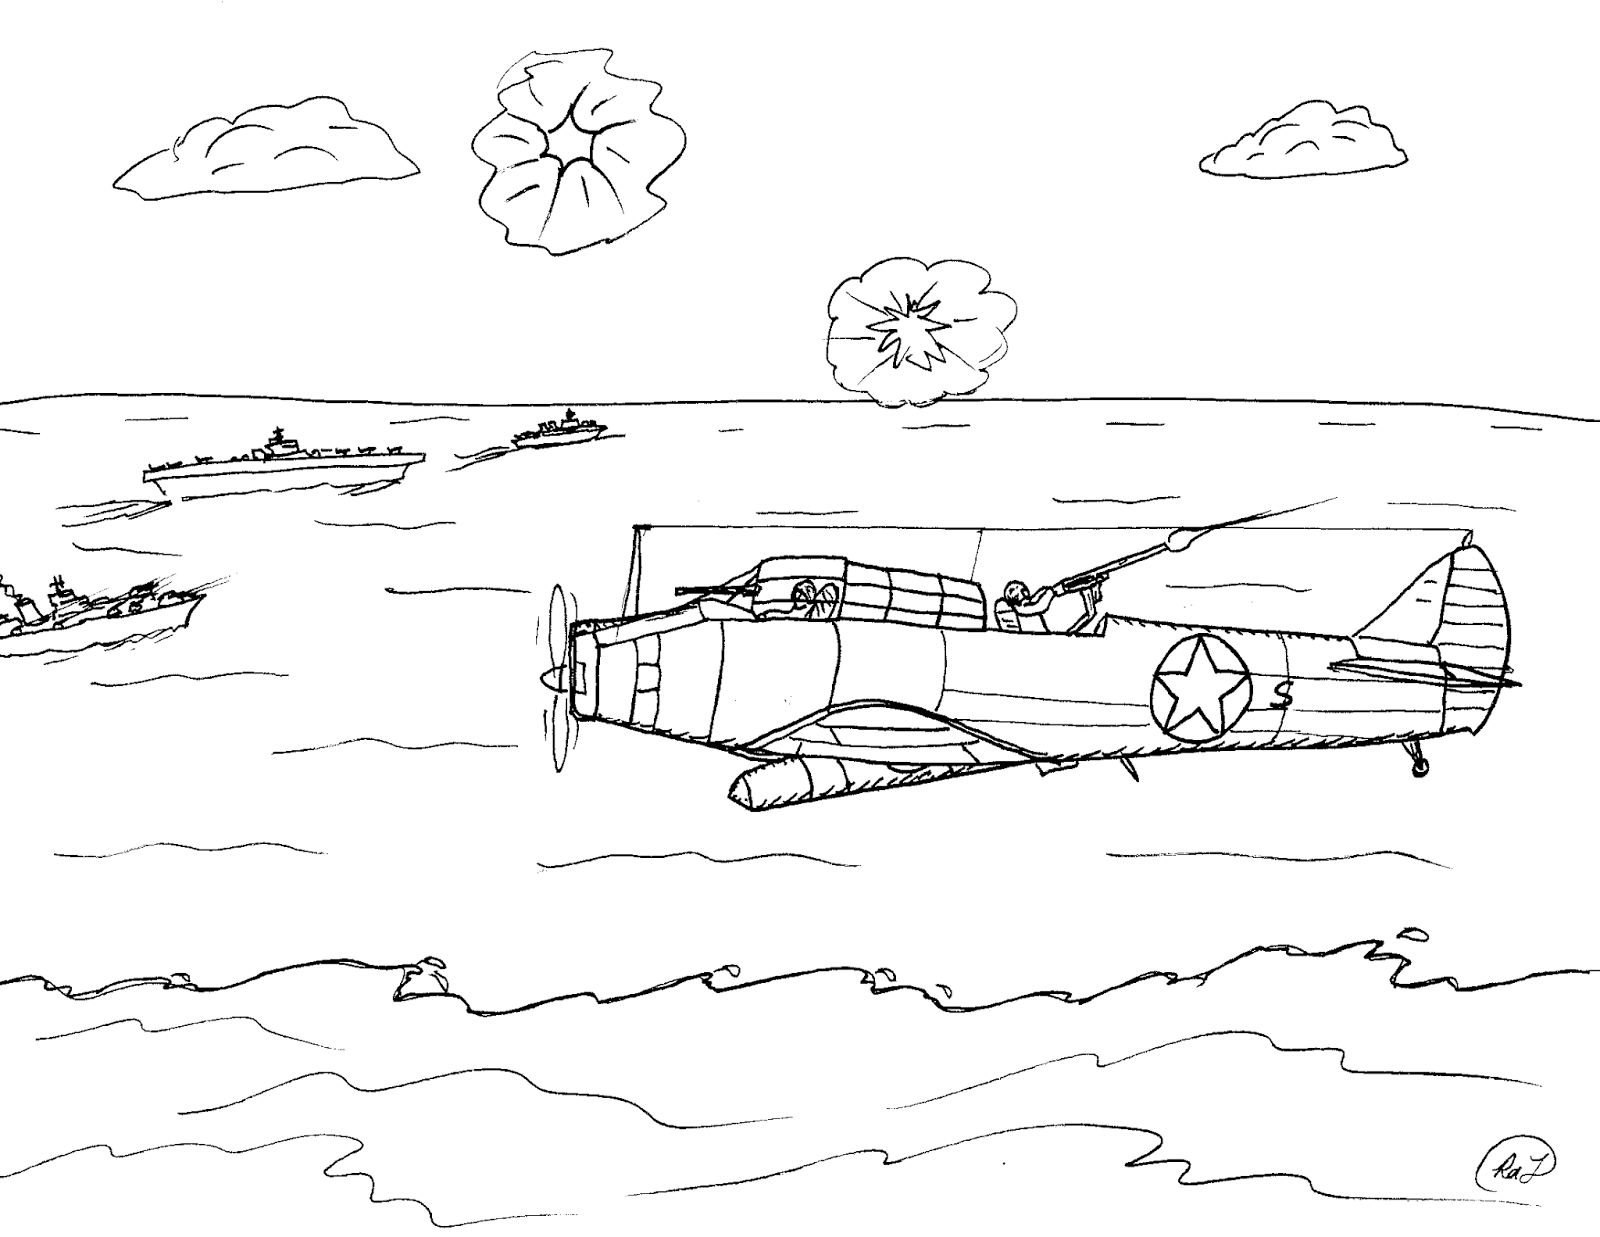 Robin S Great Coloring Pages Battle Of Midway 75th